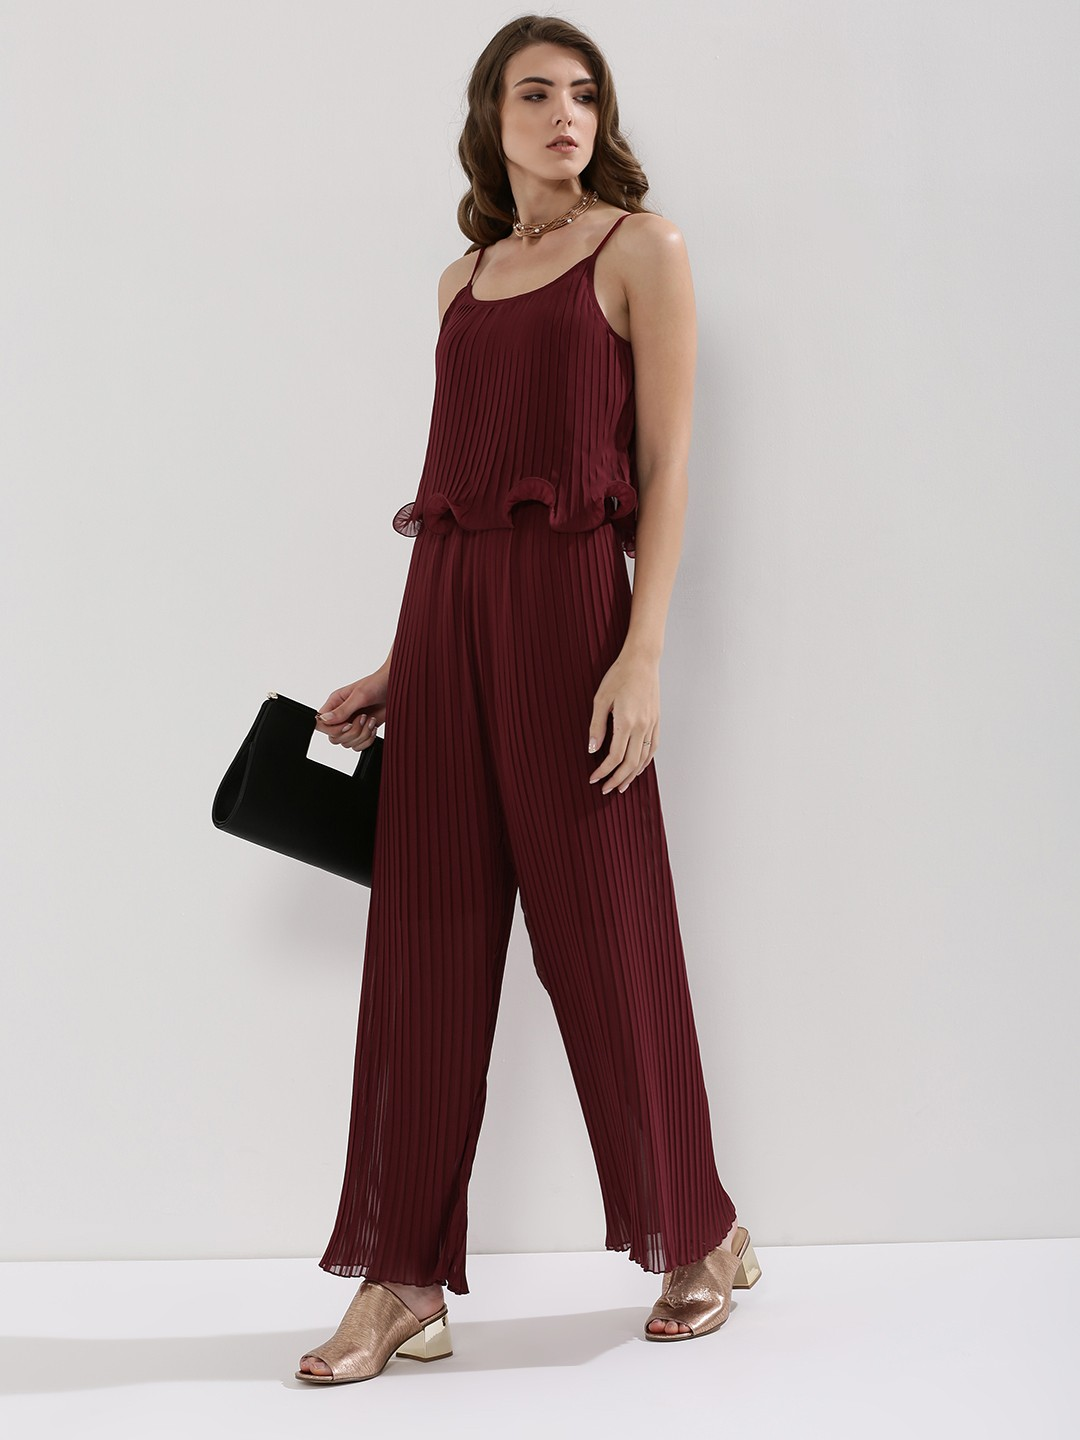 Shop for jumpsuits and rompers for women at 440v.cf Find a wide range of women's jumpsuit and romper styles from top brands. Free shipping and returns.